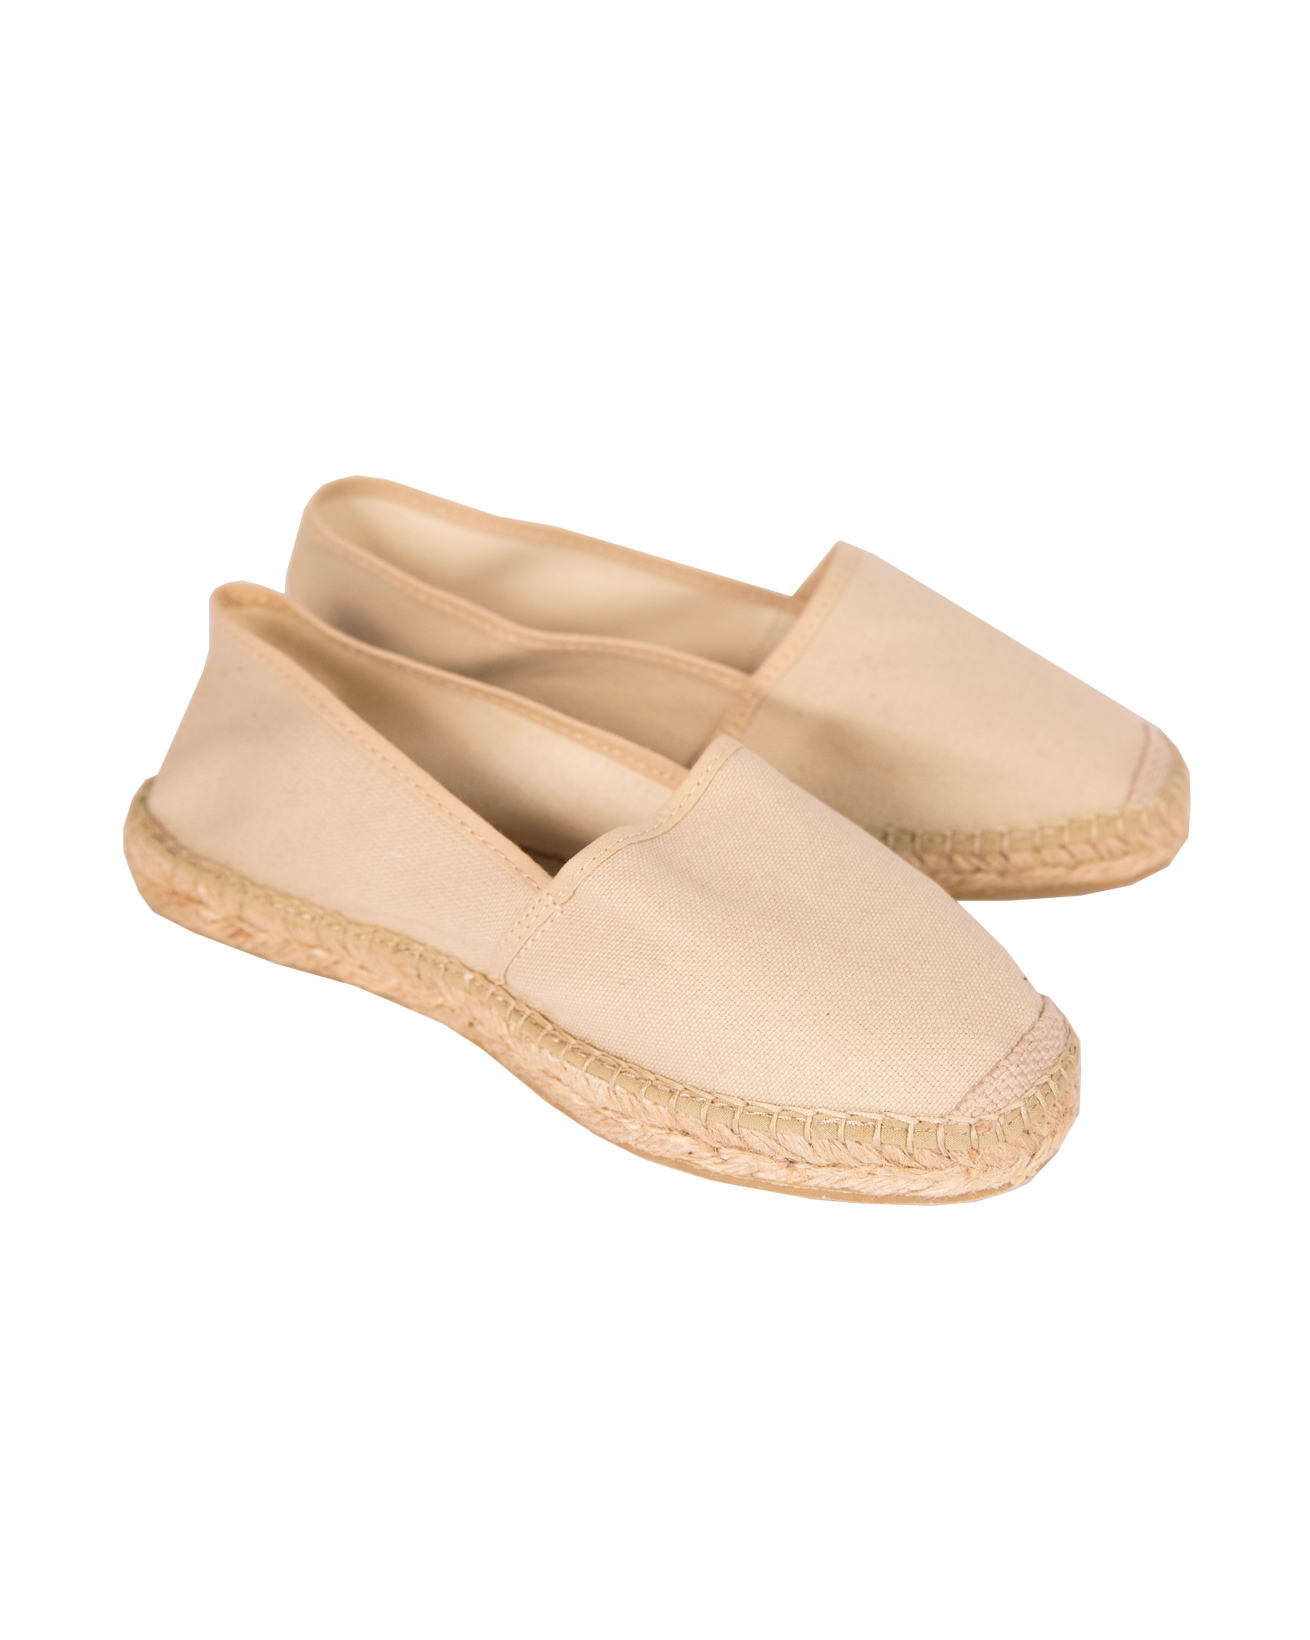 Canvas Flat espadrille - Size 40 - Taupe - 45a